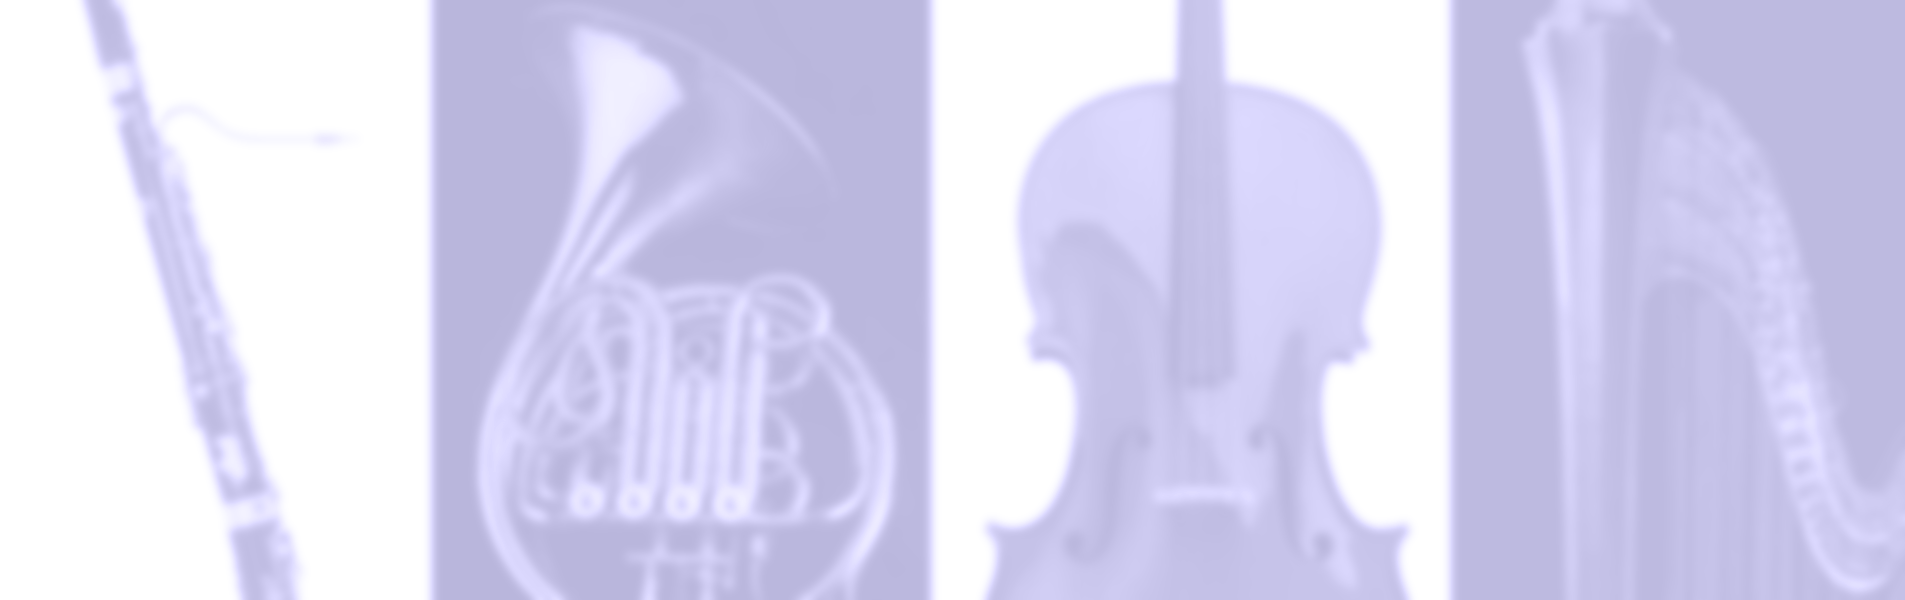 instrument-families-slider-purple